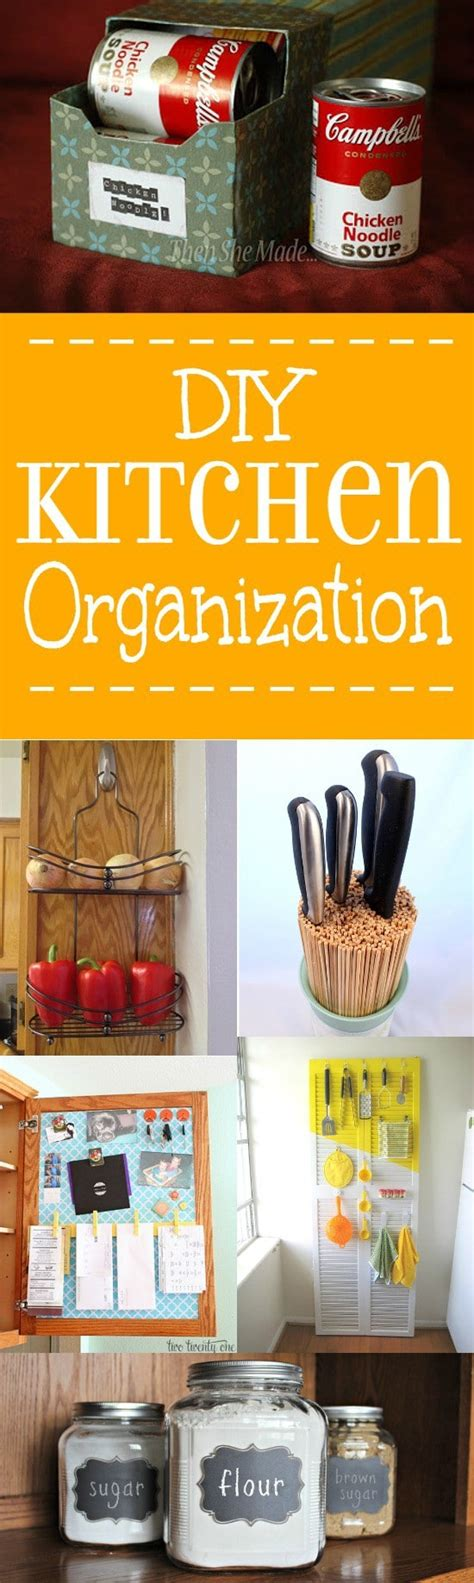 kitchen organization ideas diy 24 diy kitchen organization ideas the gracious 5437